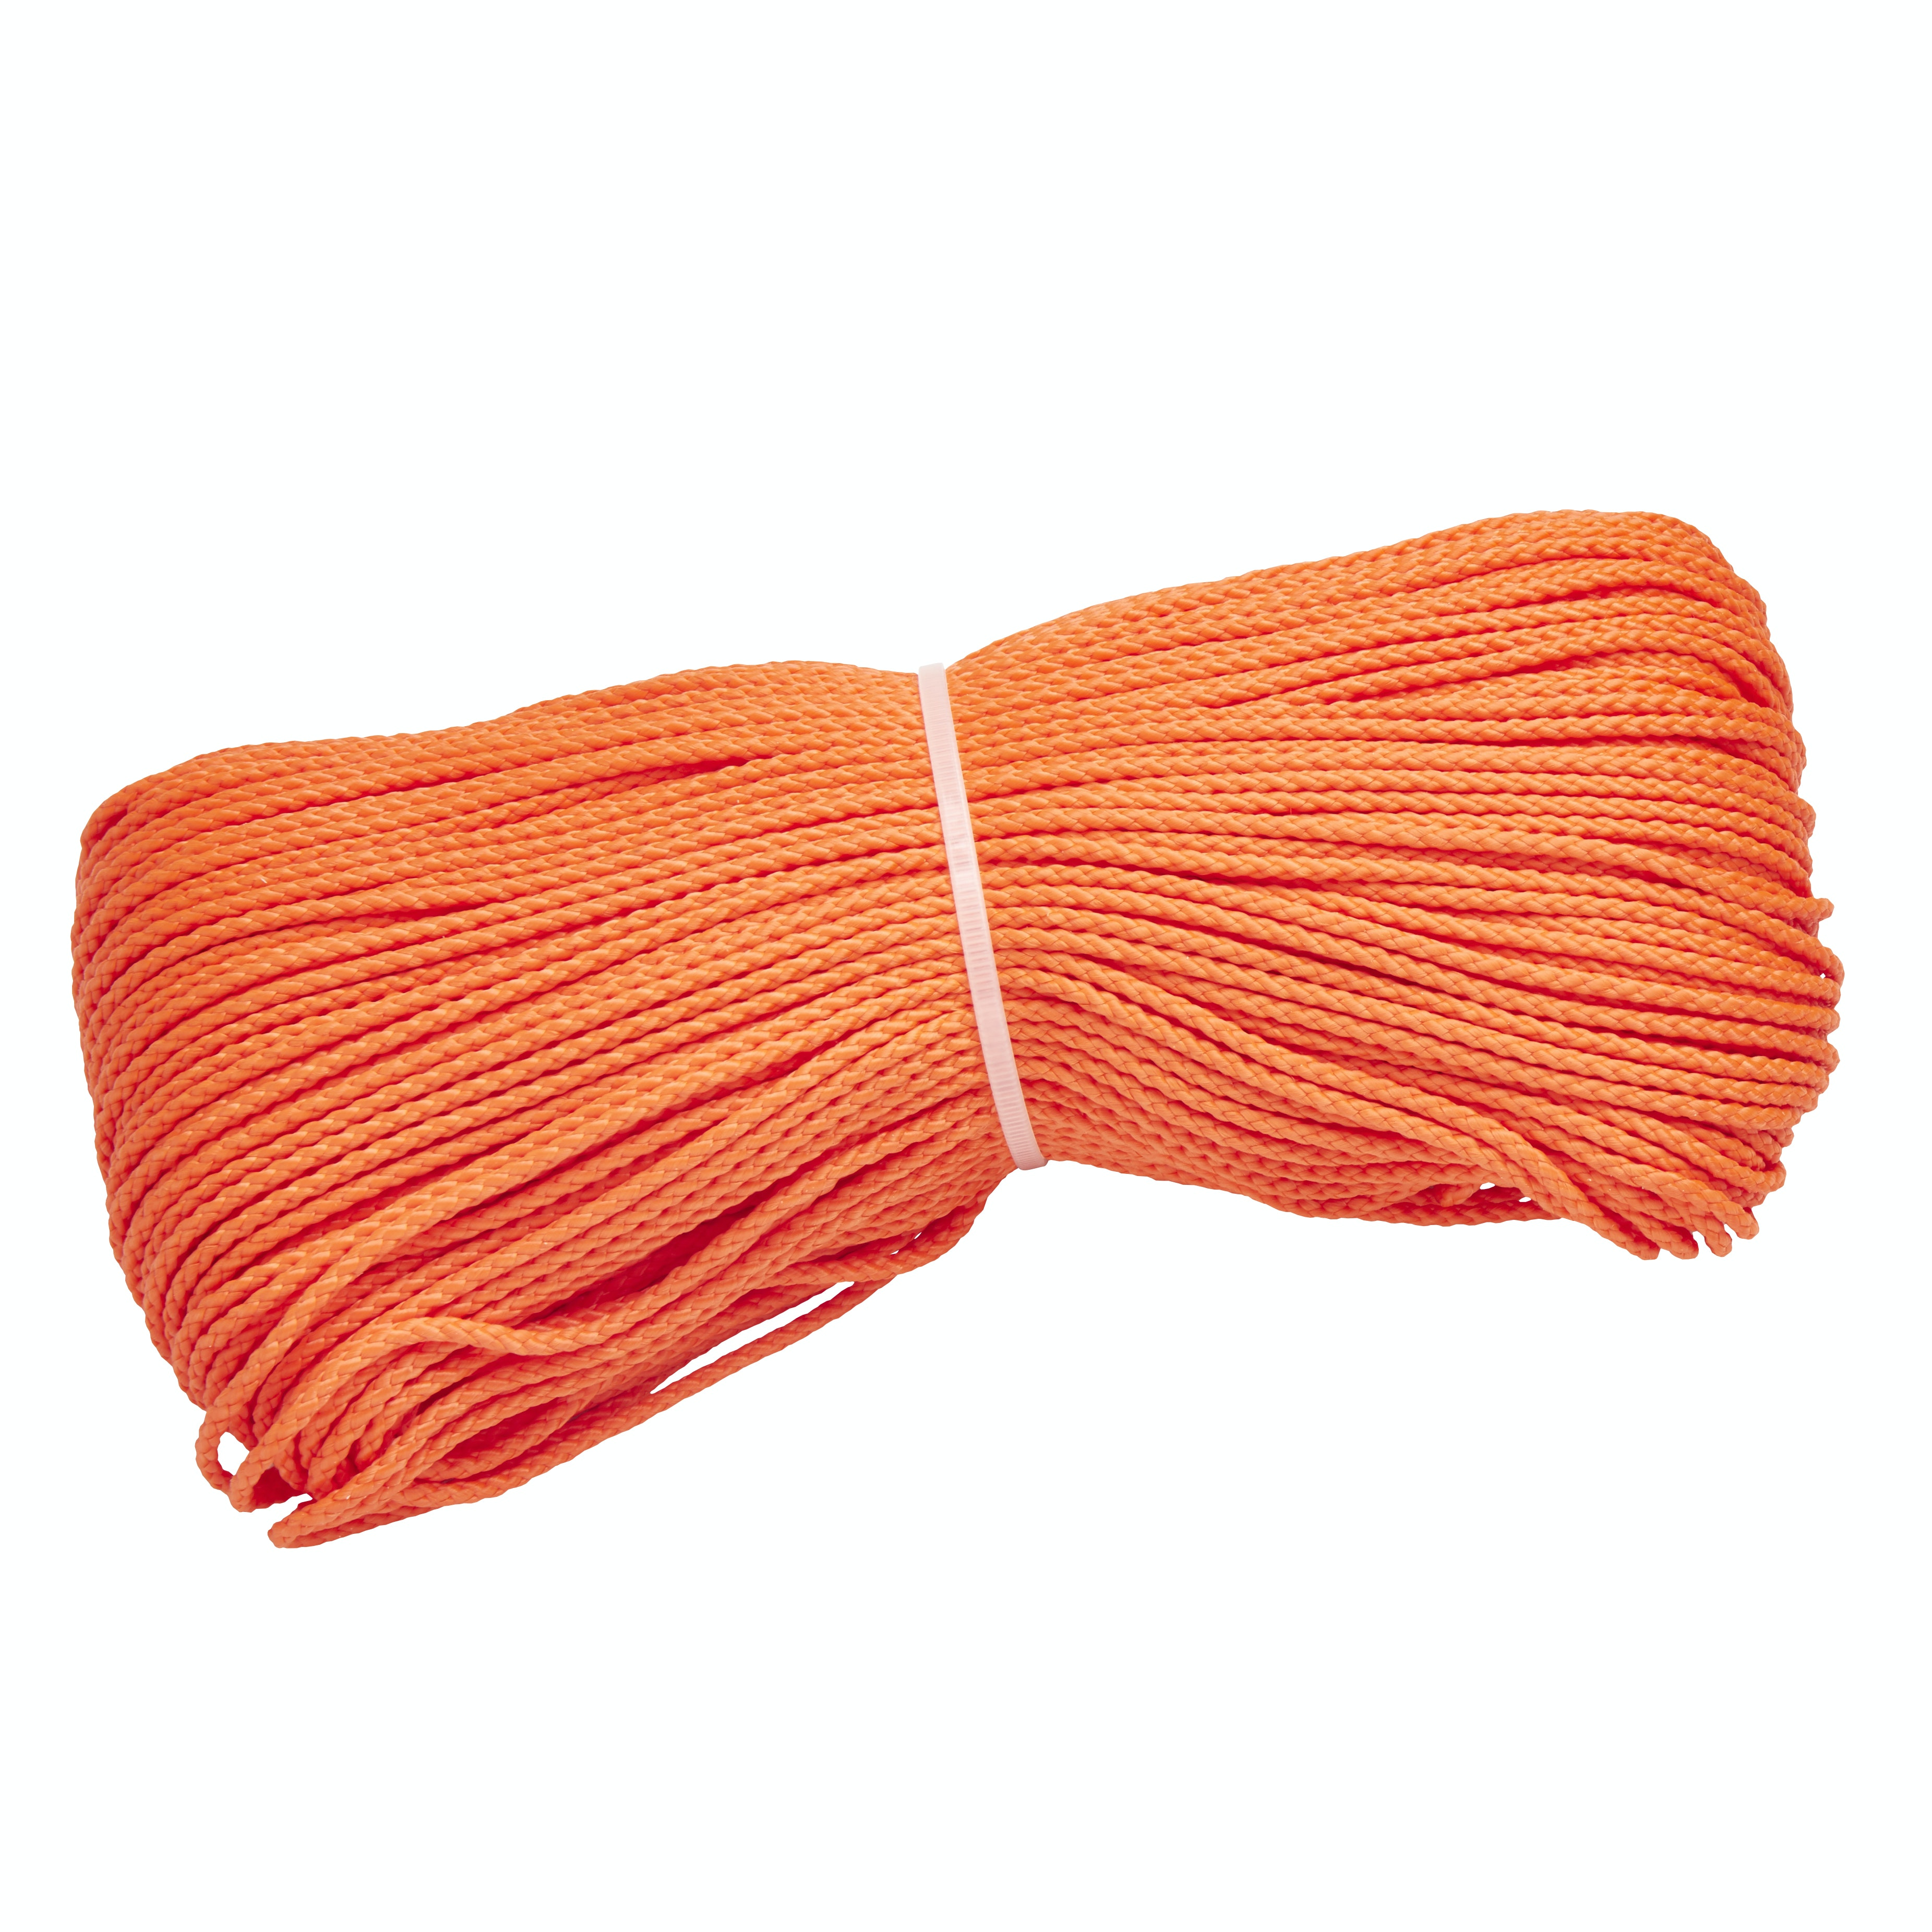 Rep Bunt Polypropen 3mm Flät 135m Orange